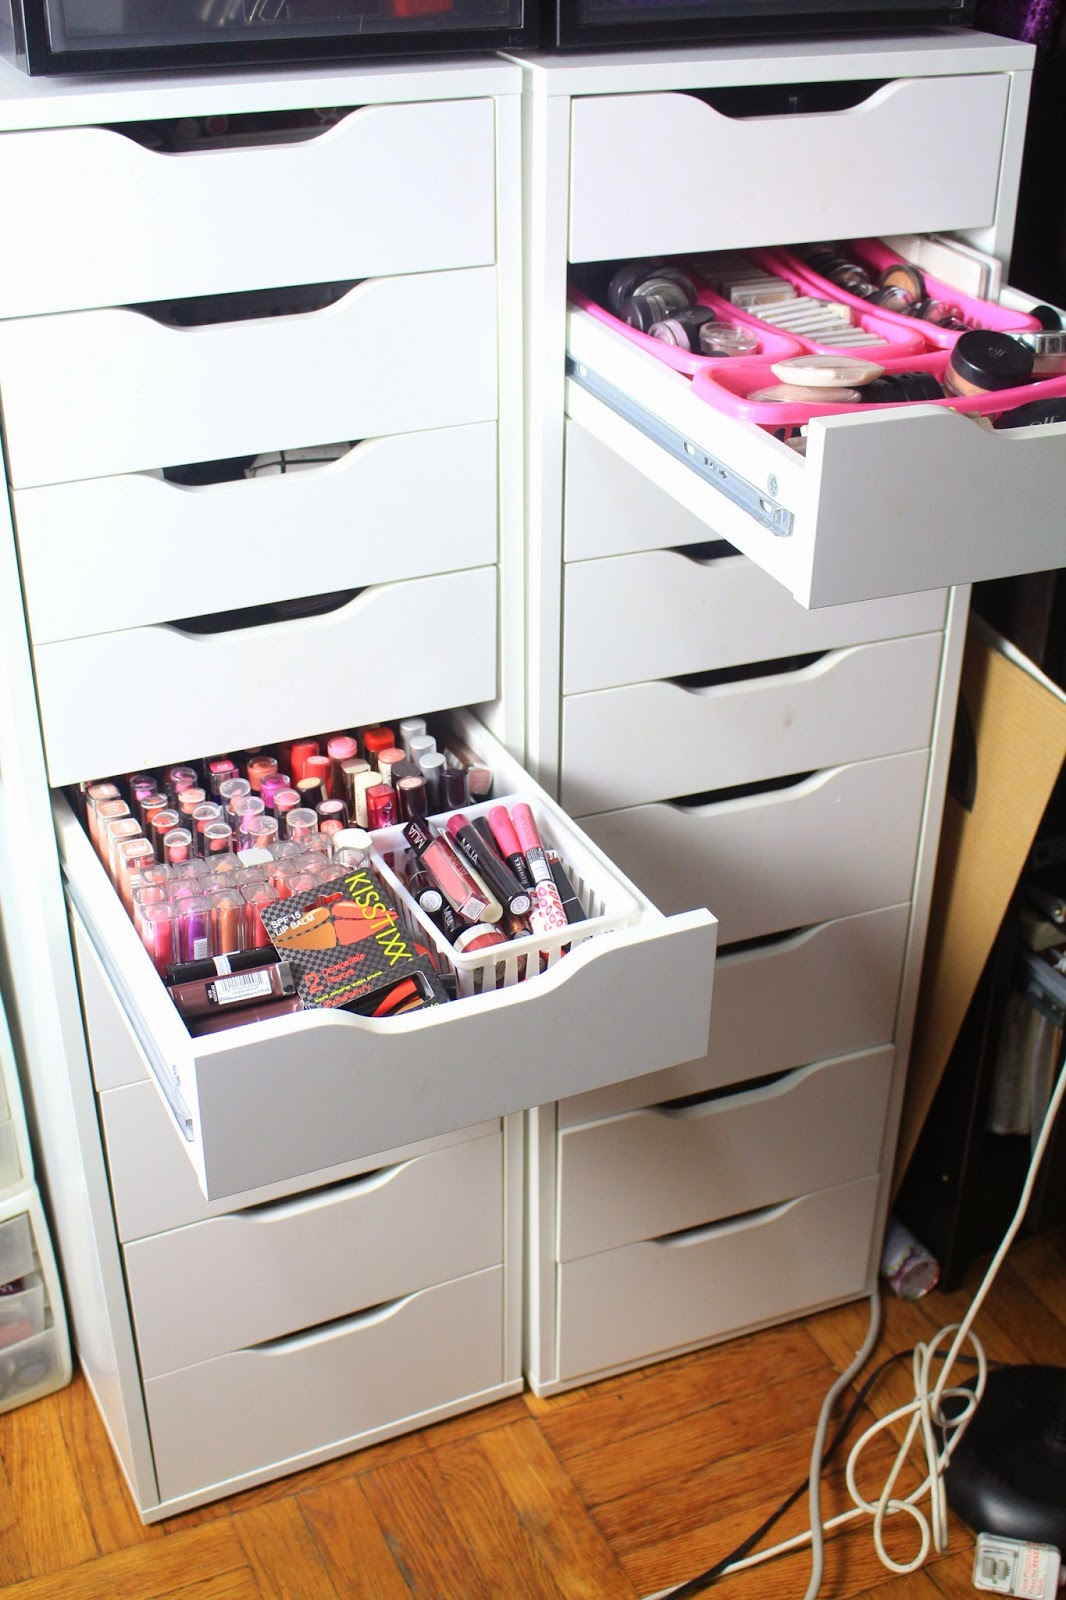 Diva makeup queen diy ikea alex drawers for makeup - Organizador de cajones ikea ...